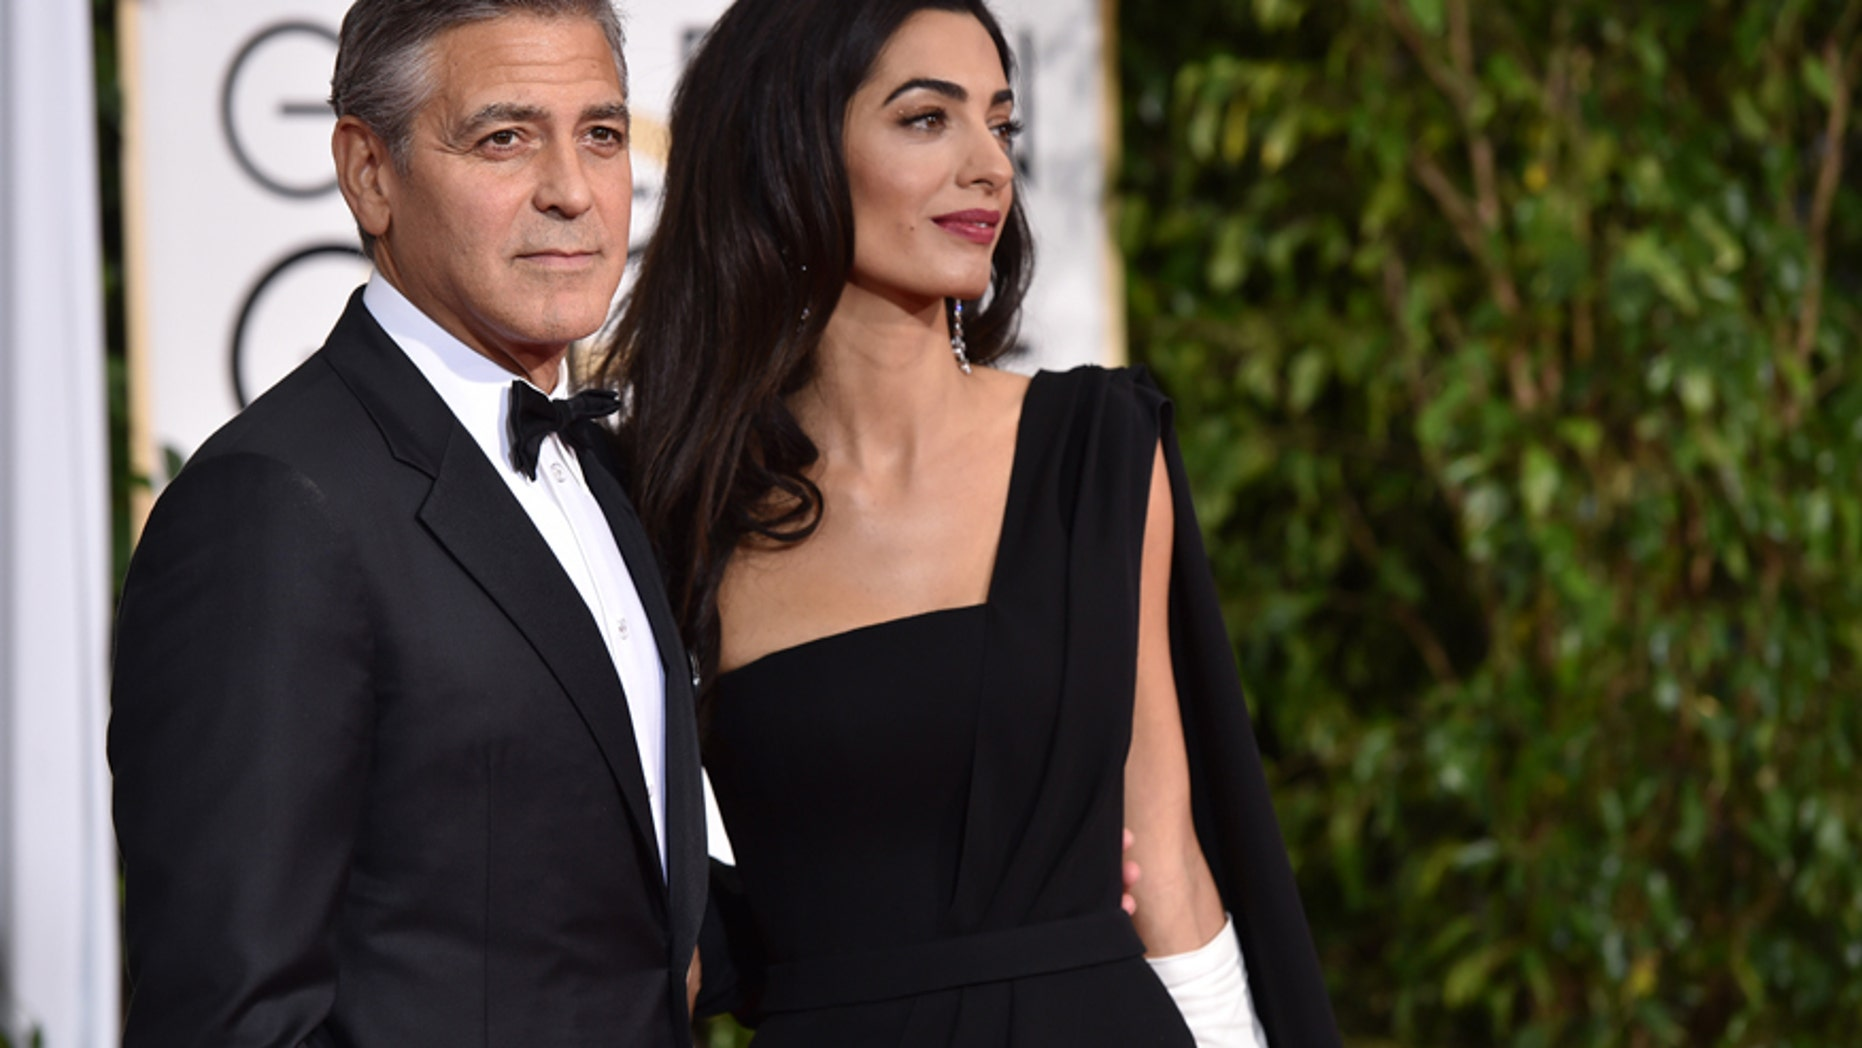 George Clooney, left, and Amal Clooney arrive at the 72nd annual Golden Globe Awards at the Beverly Hilton Hotel on Sunday, Jan. 11, 2015, in Beverly Hills, Calif.